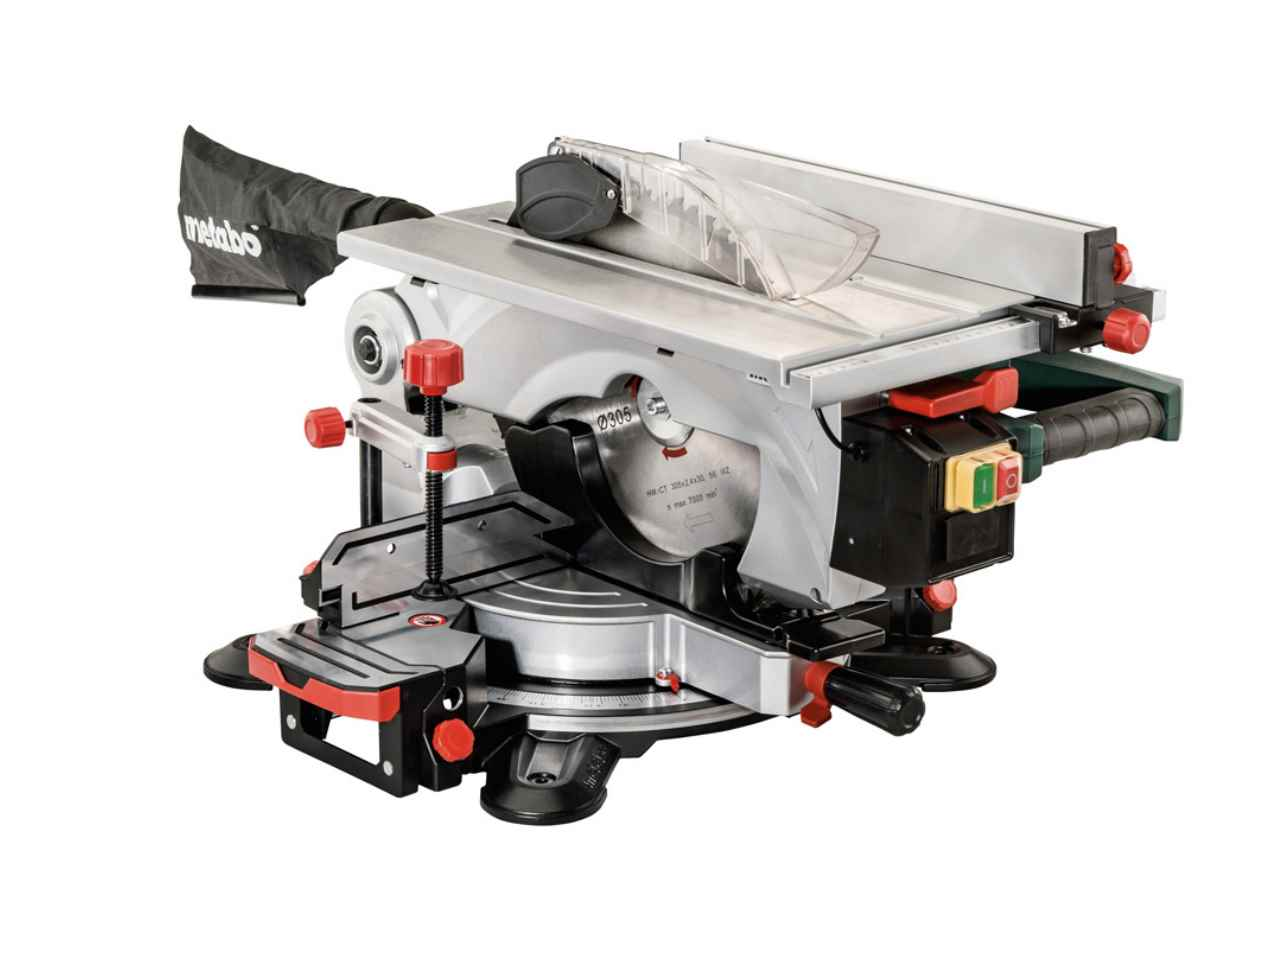 Metabo kgt305m 240v 12 inch crosscut and table combination saw for 12 inch table saw